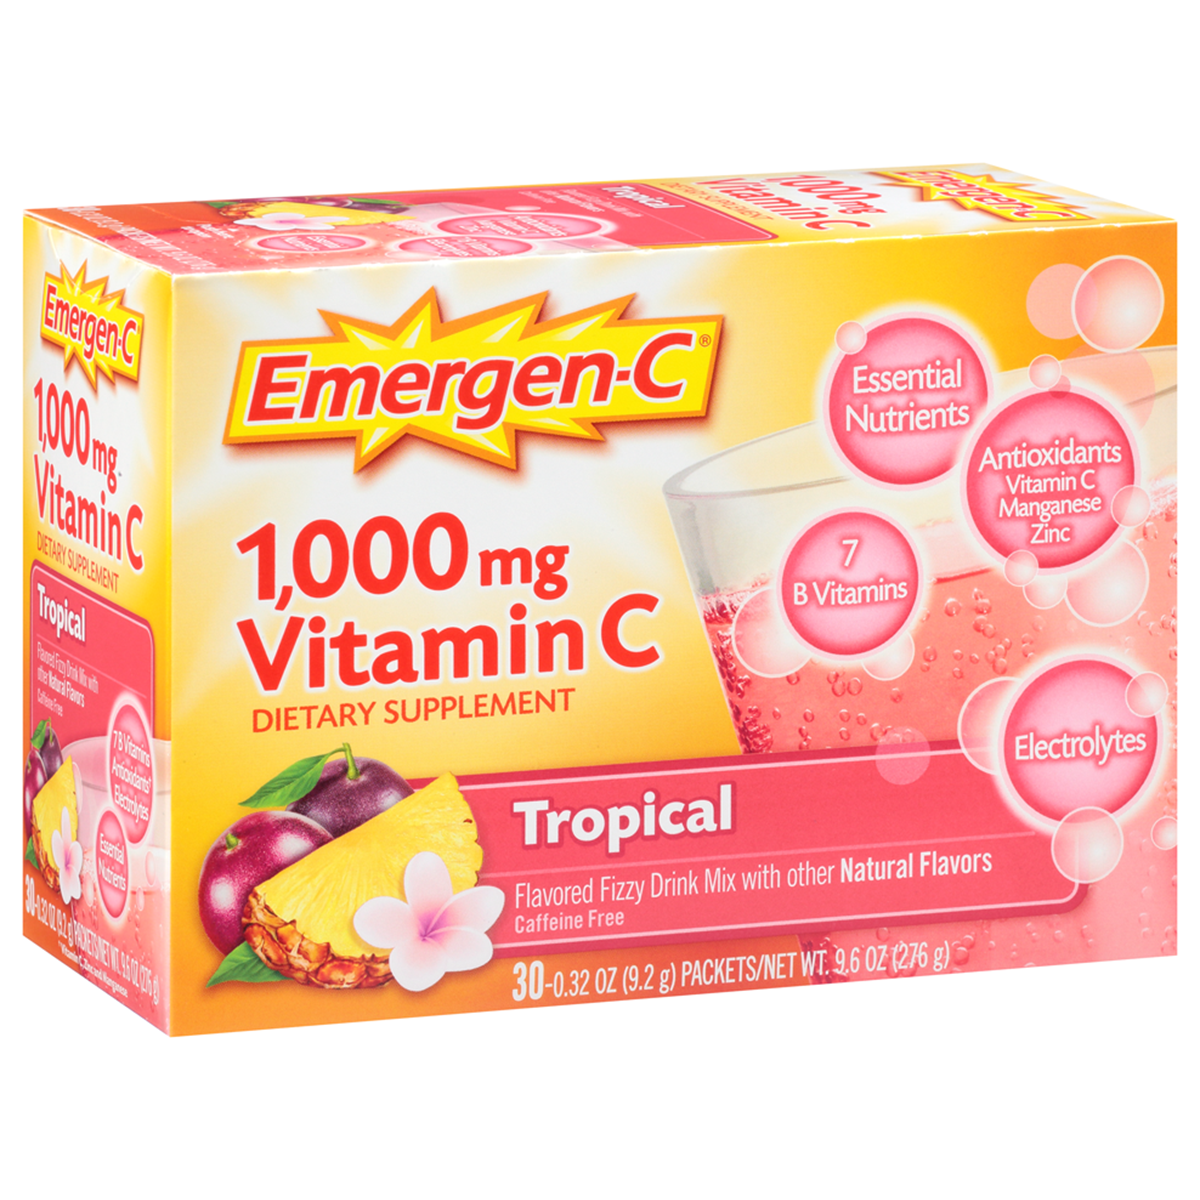 Emergen-C (30 Count, Tropical Flavor) Dietary Supplement Fizzy Drink Mix with 1000 mg Vitamin C, 0.32 Ounce Packets, Caffeine Free